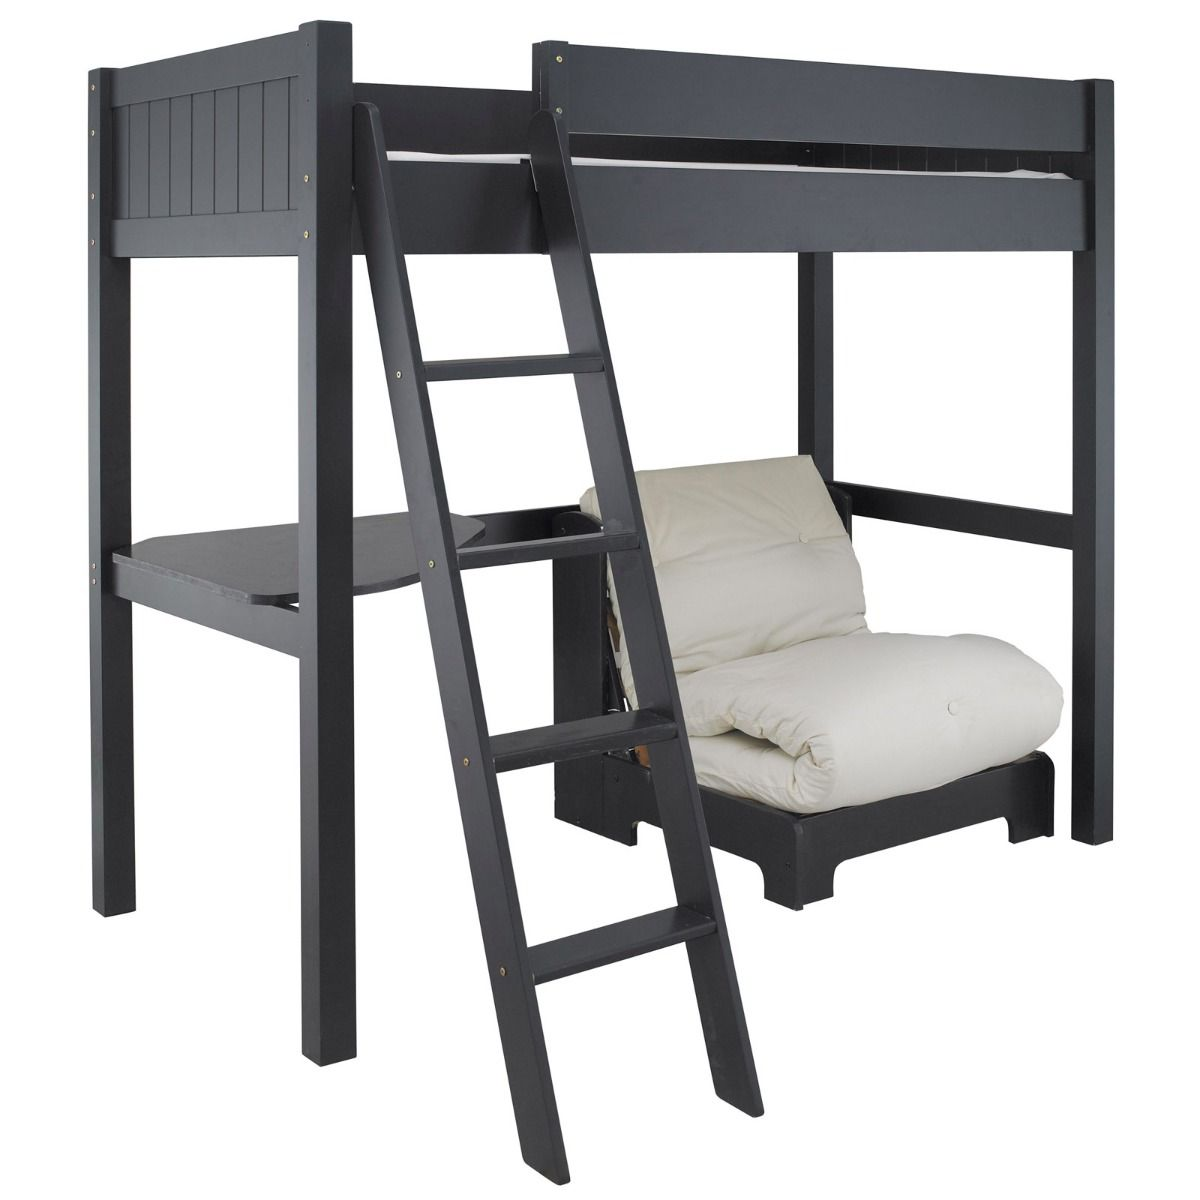 Fargo highsleeper bed desk futon painswick blue by for High sleeper bed